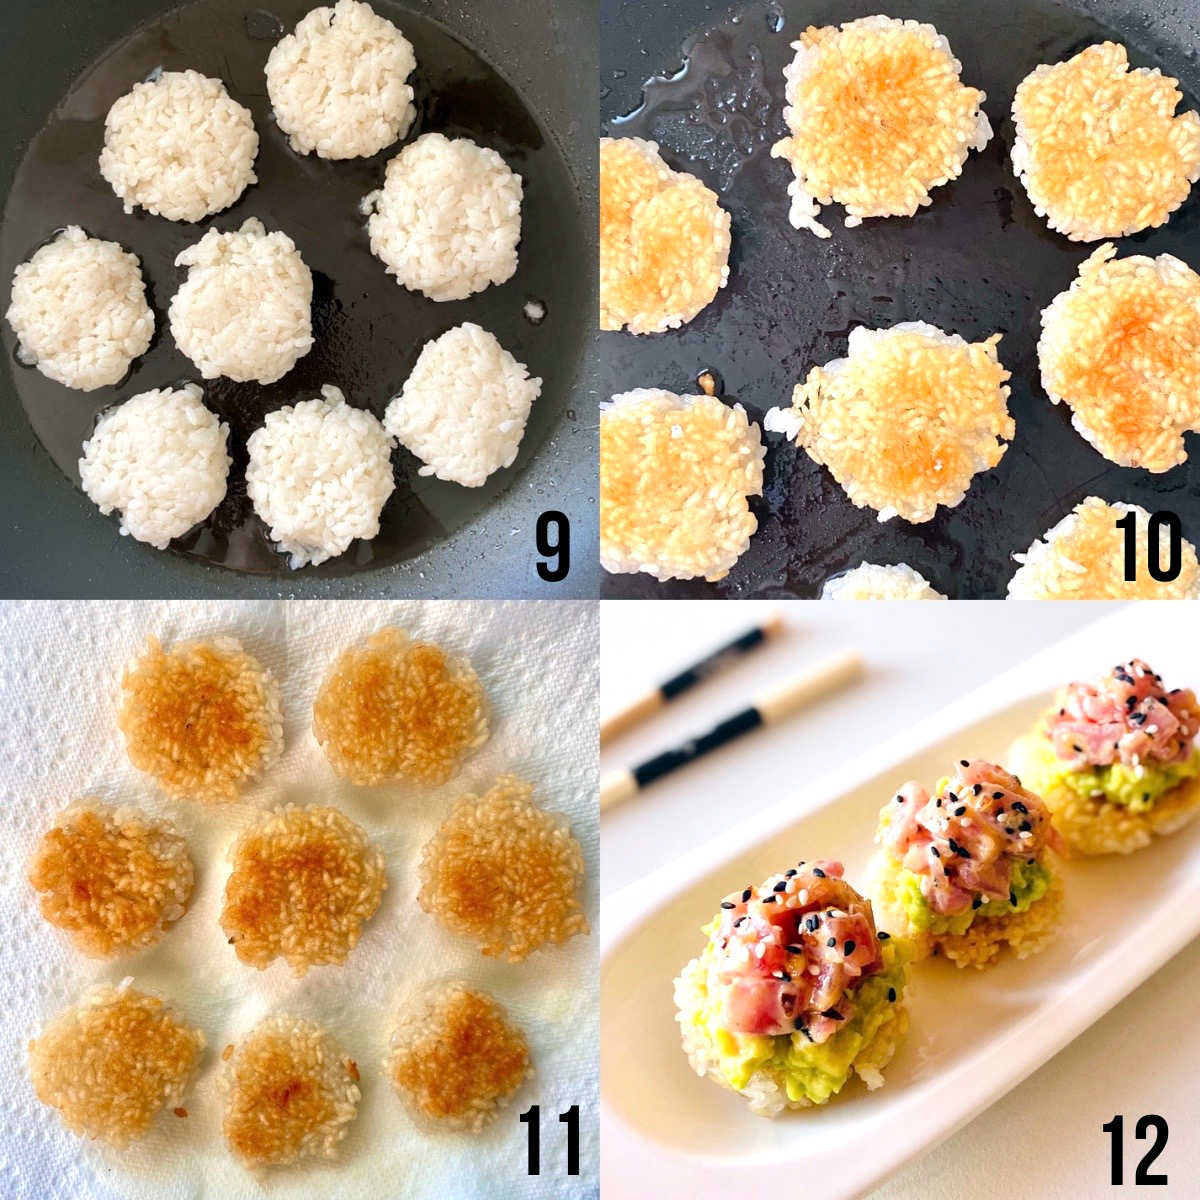 spicy tuna crispy rice process shots 9 through 12